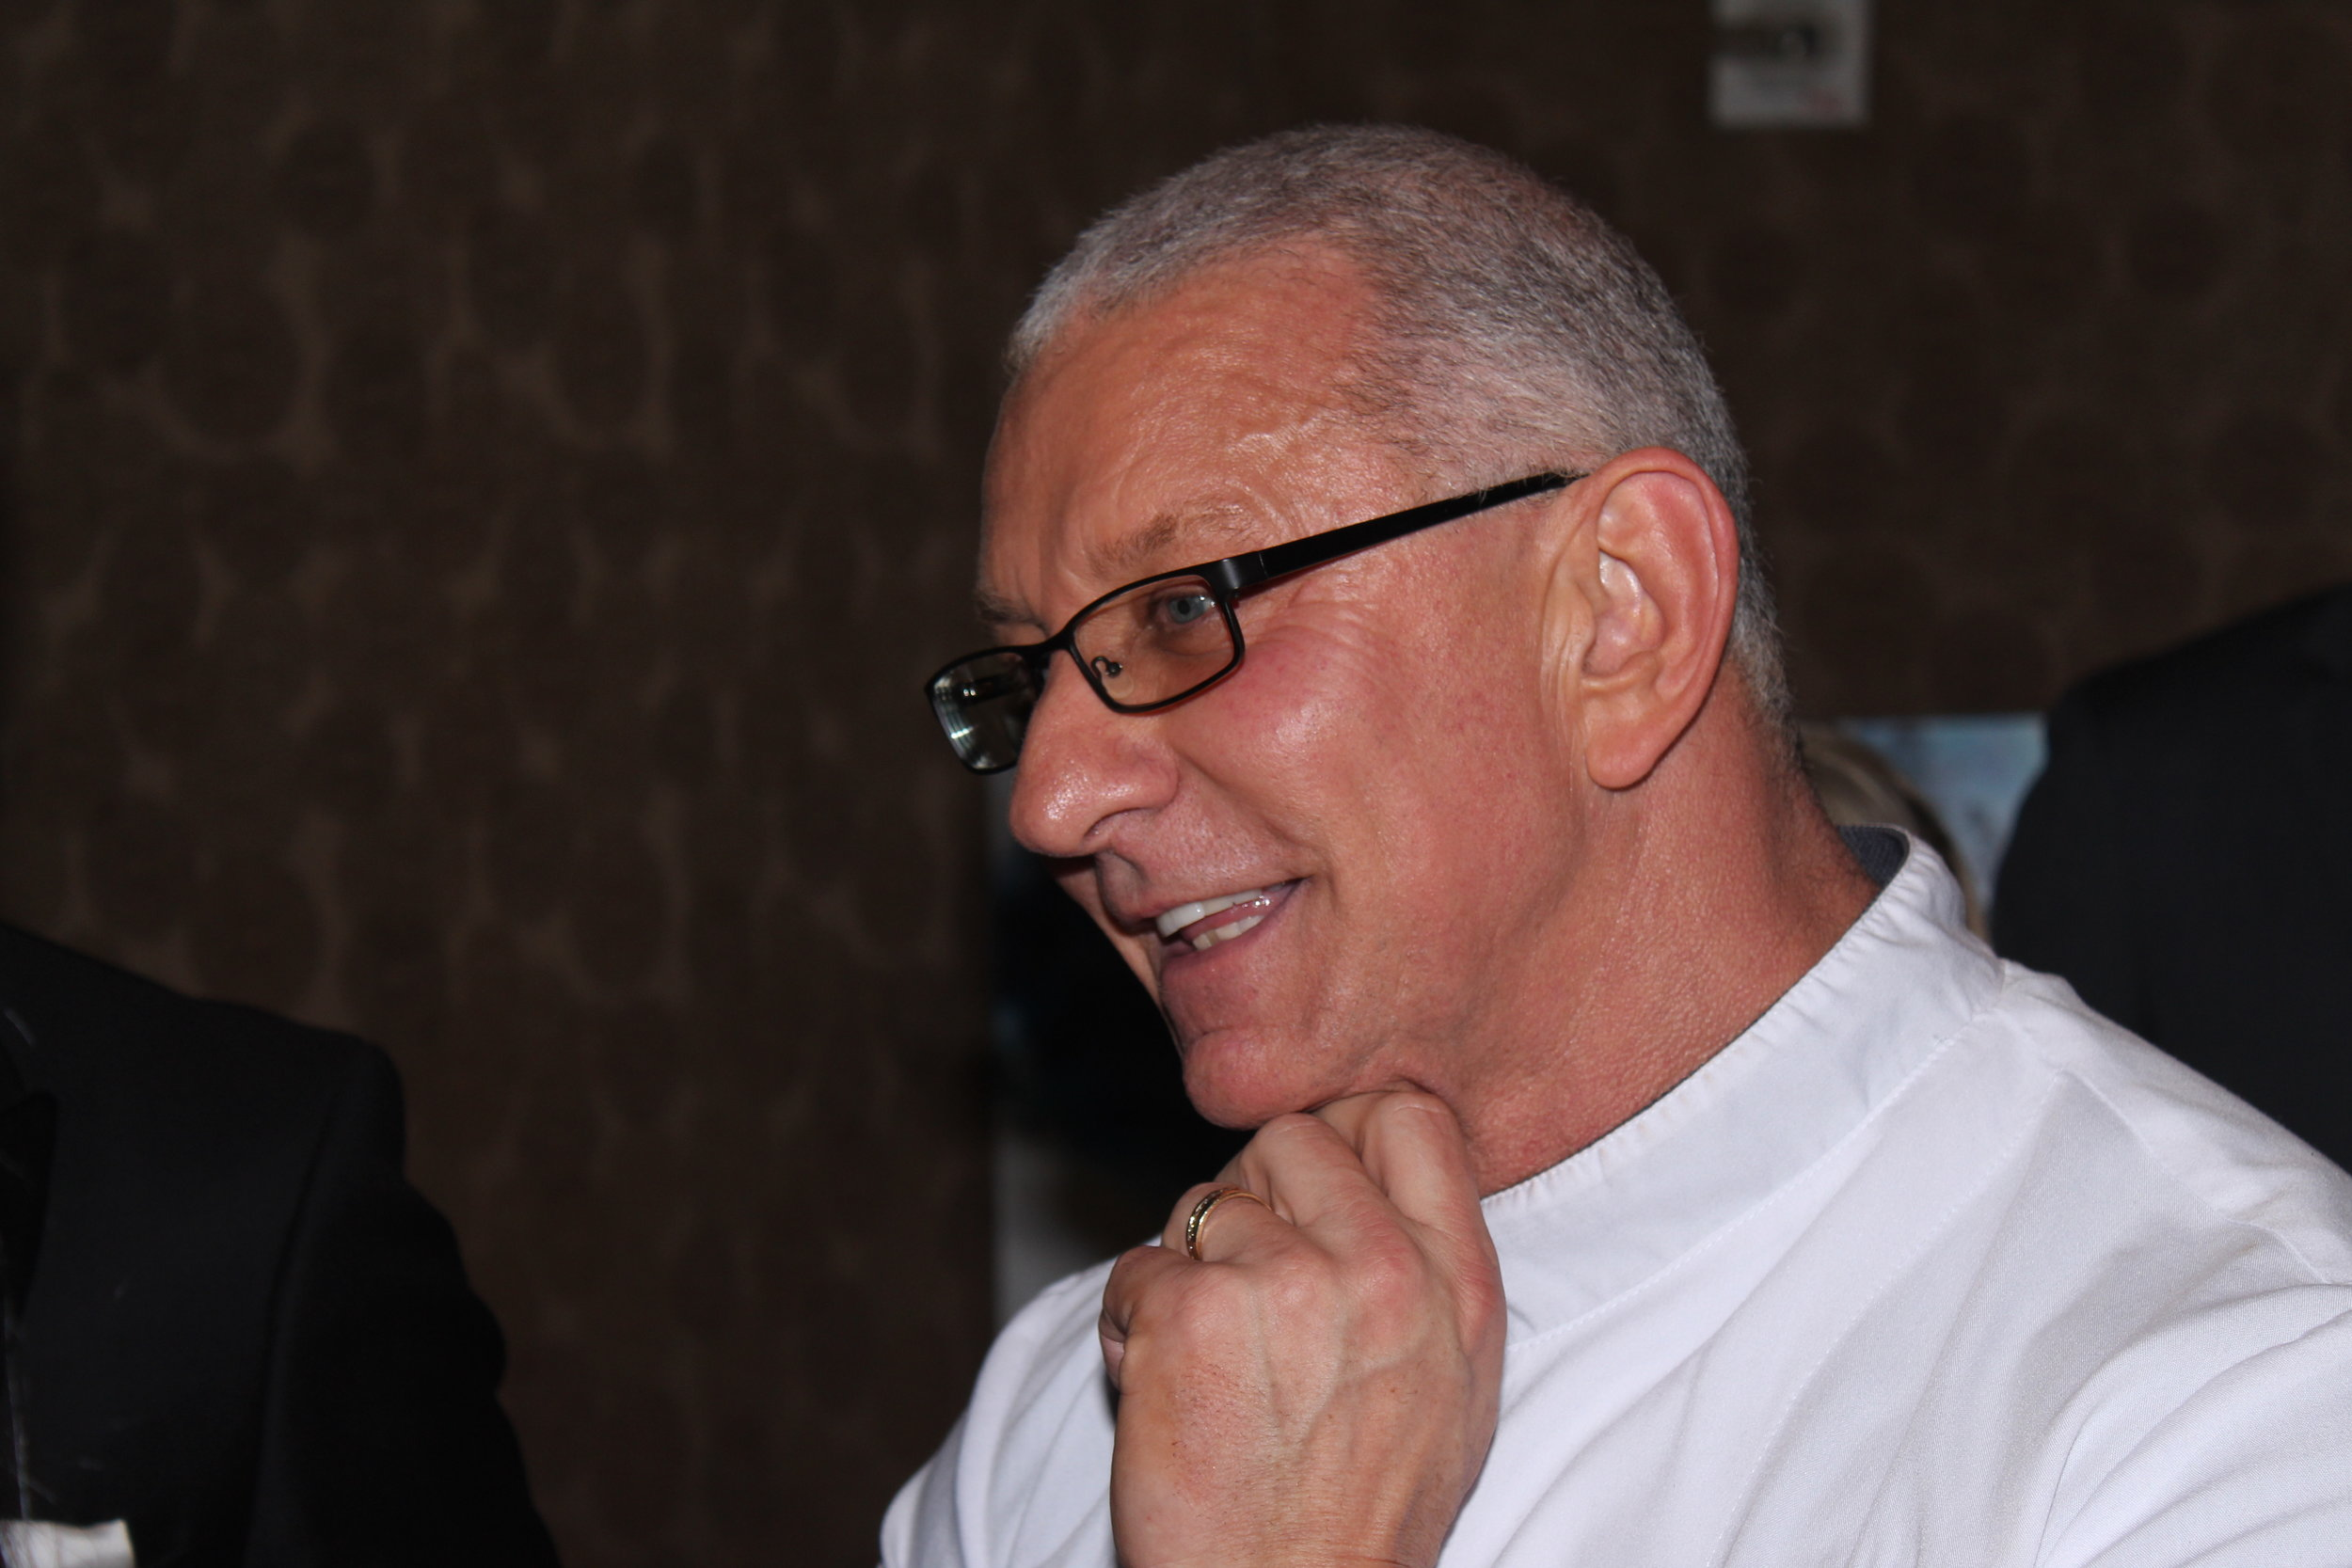 Celebrity Chef Robert Irvine prepared a truly incredible menu for attendees.